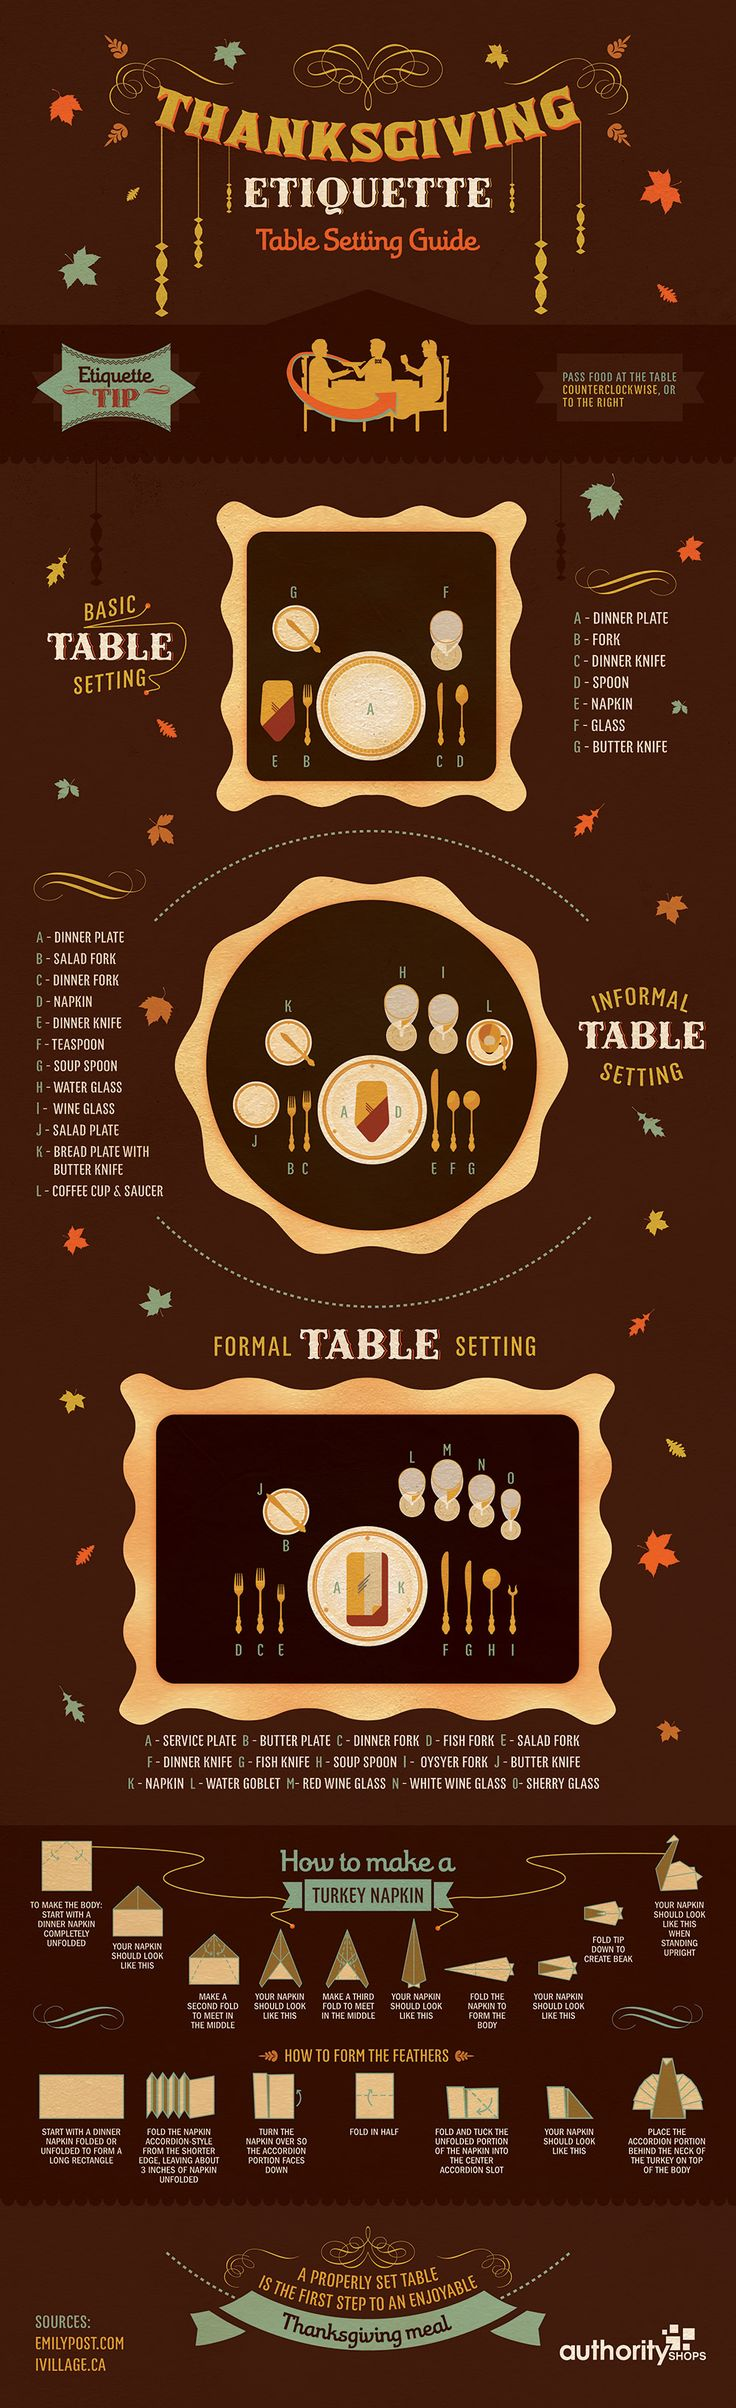 Infographic: Thanksgiving table setting & etiquette guide | The Salt Lake Tribune